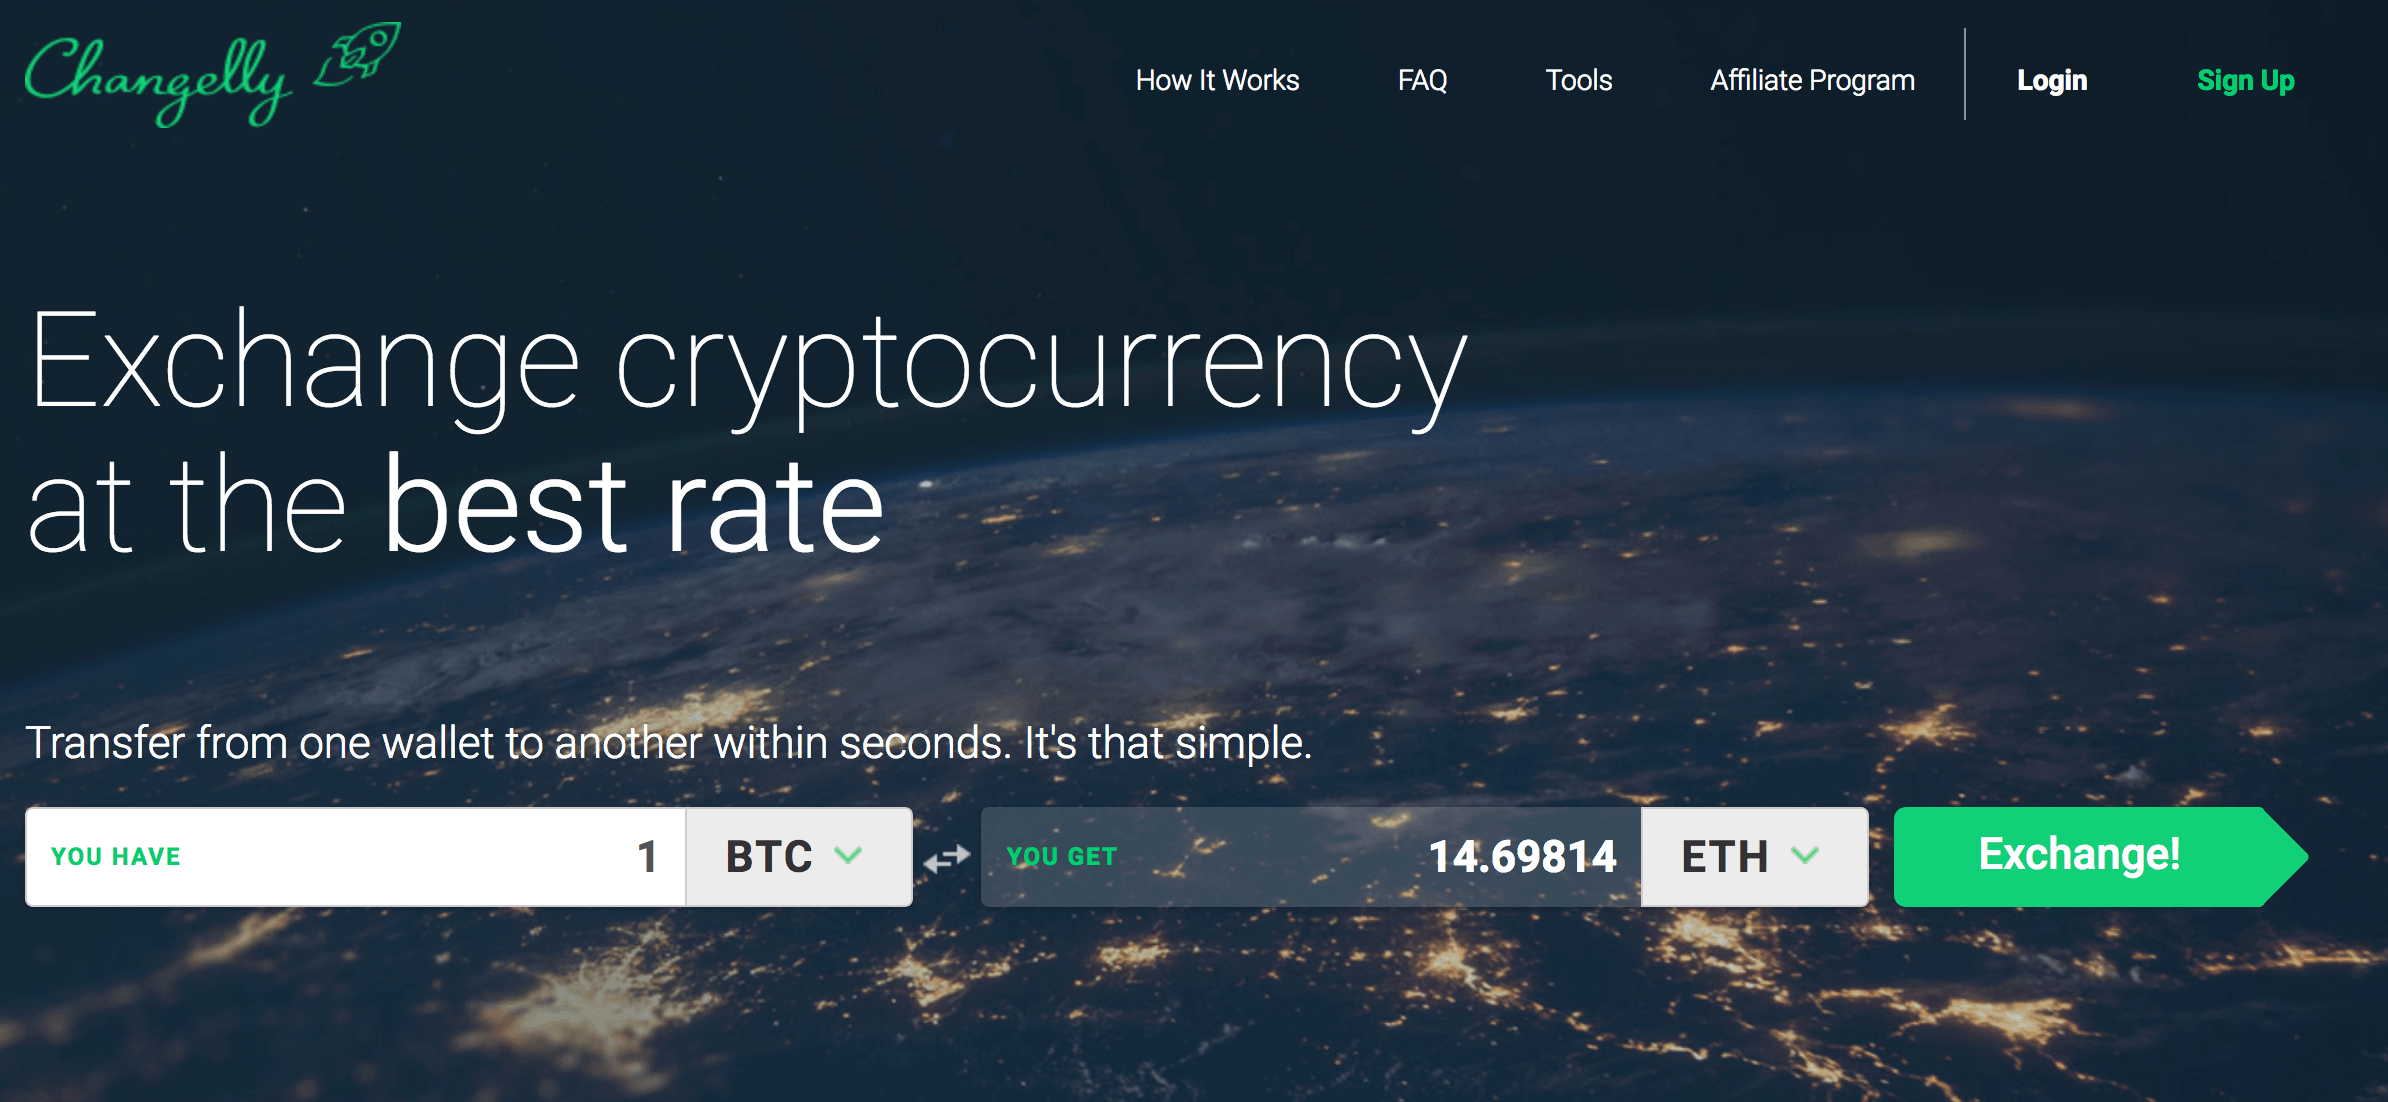 changelly home page